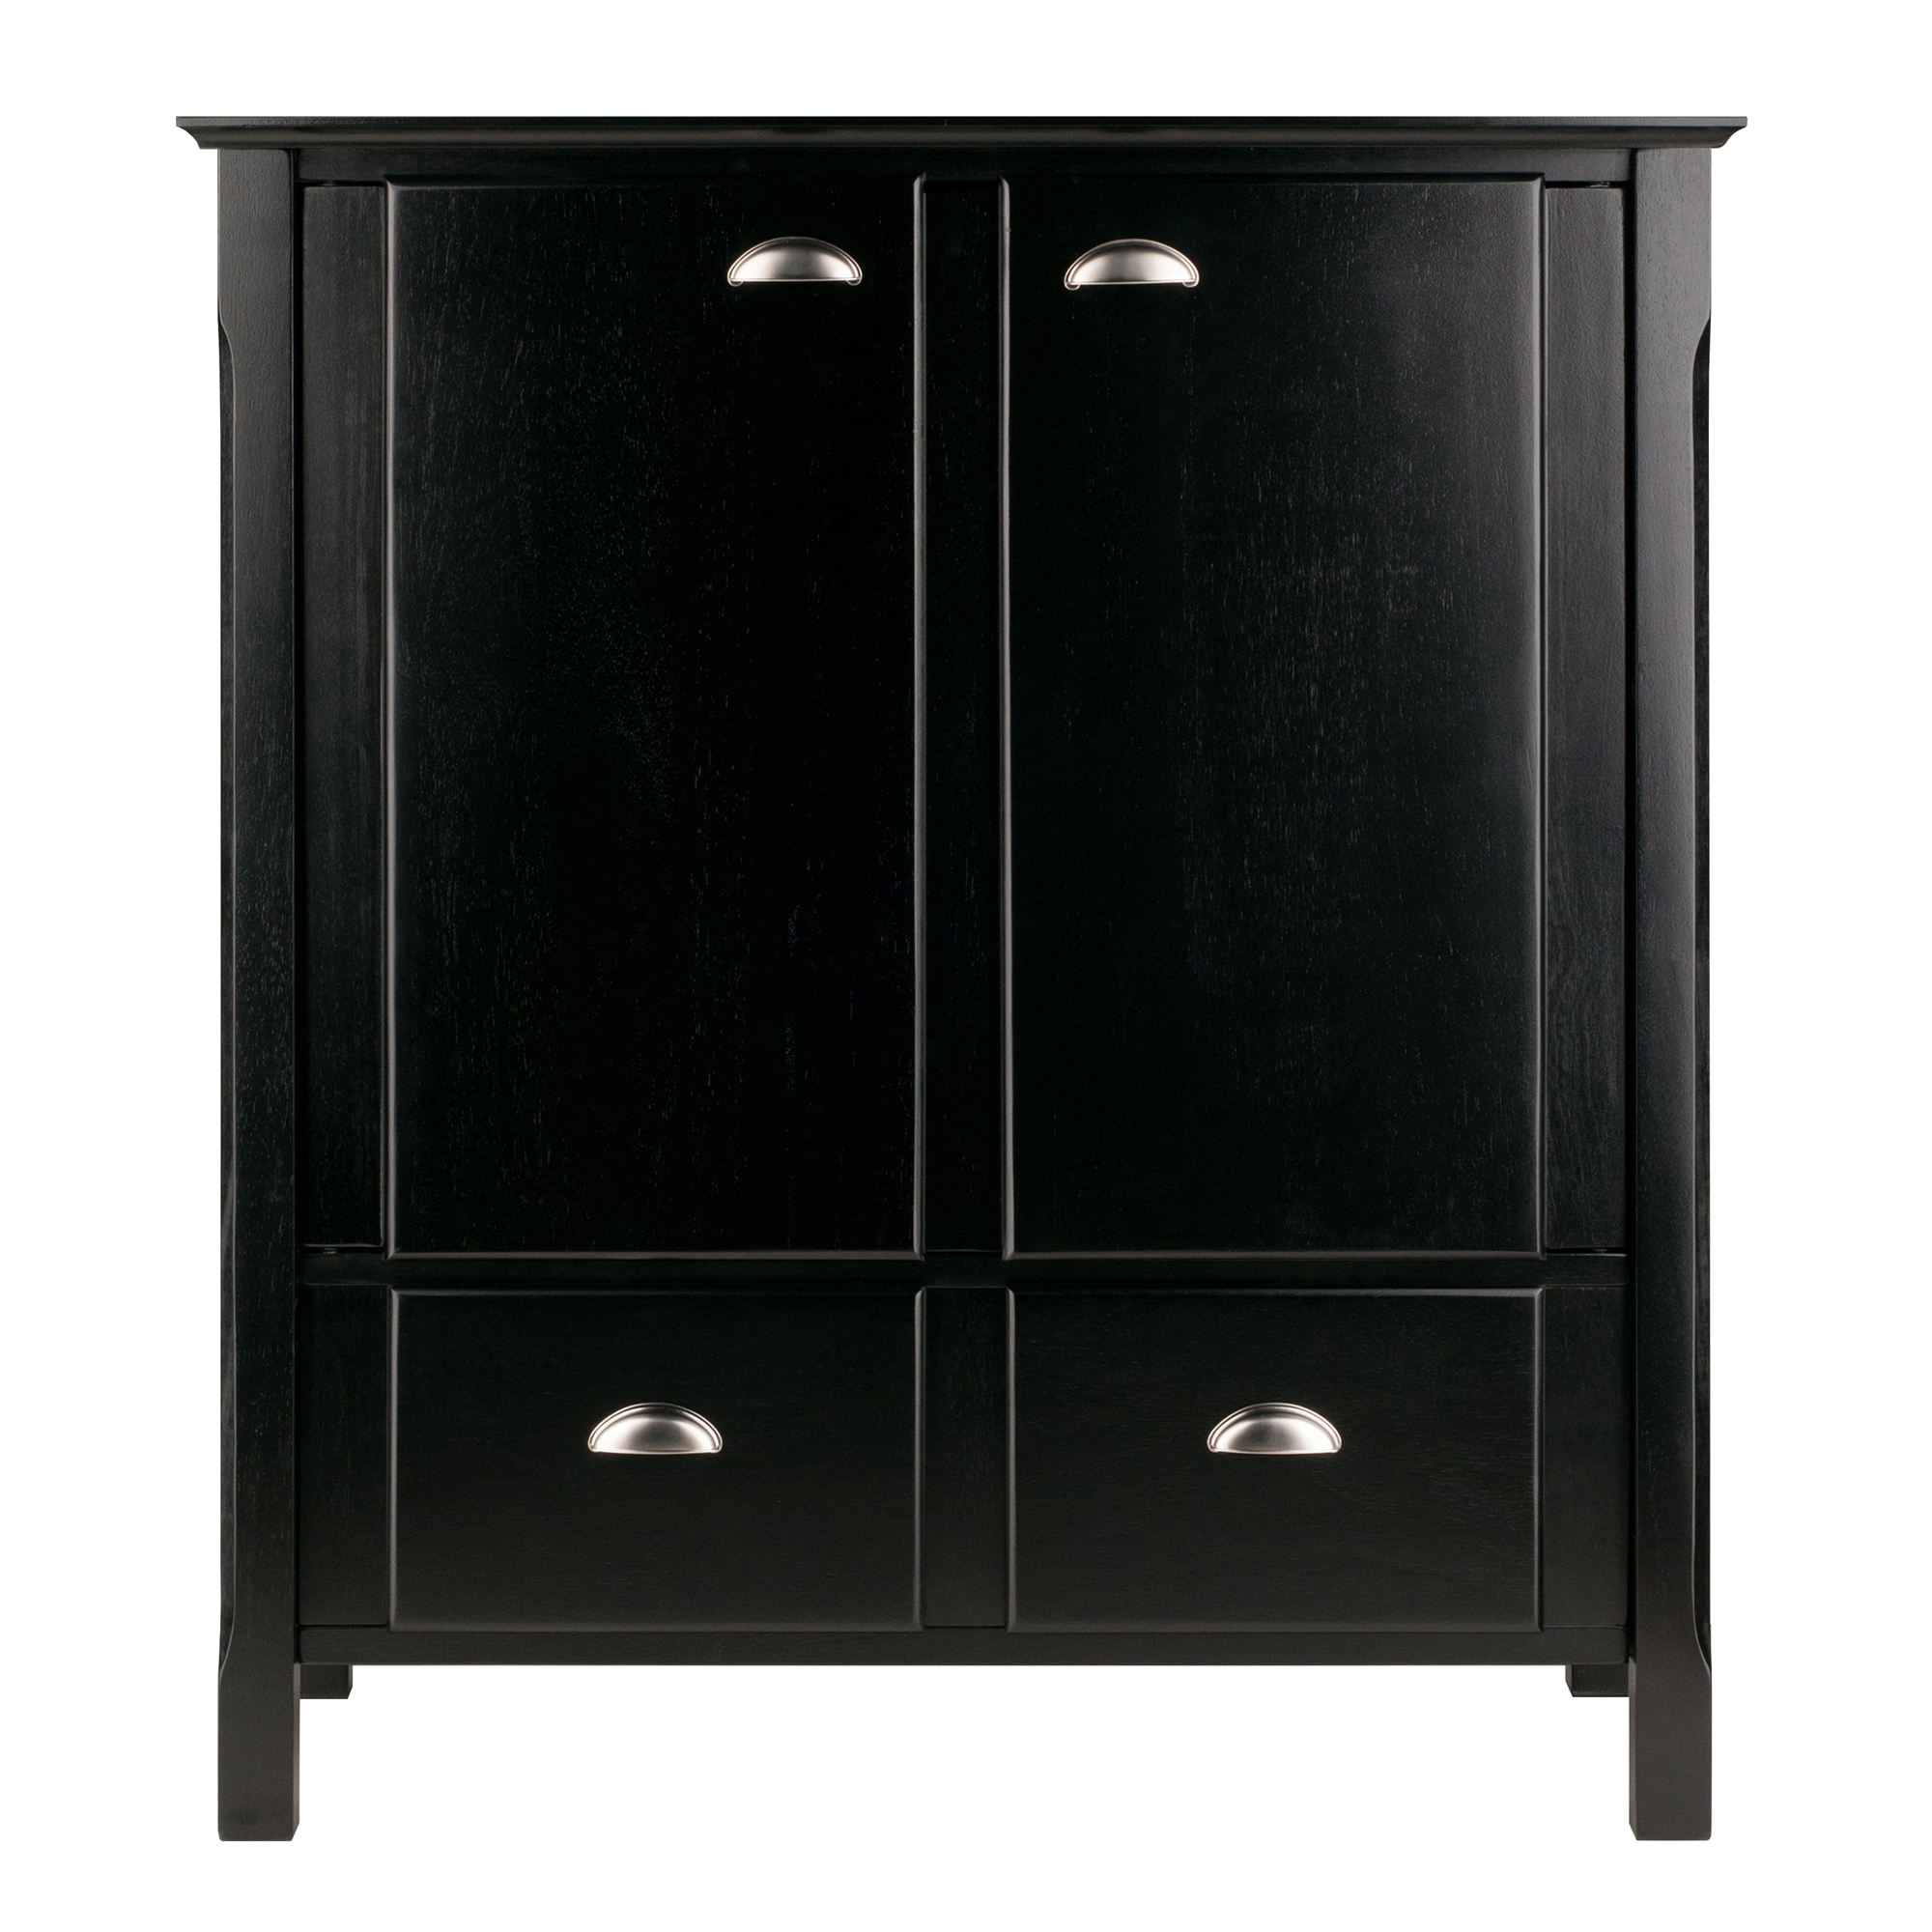 Winsome Wood Timber Cabinet With Two Doors And Drawers Black